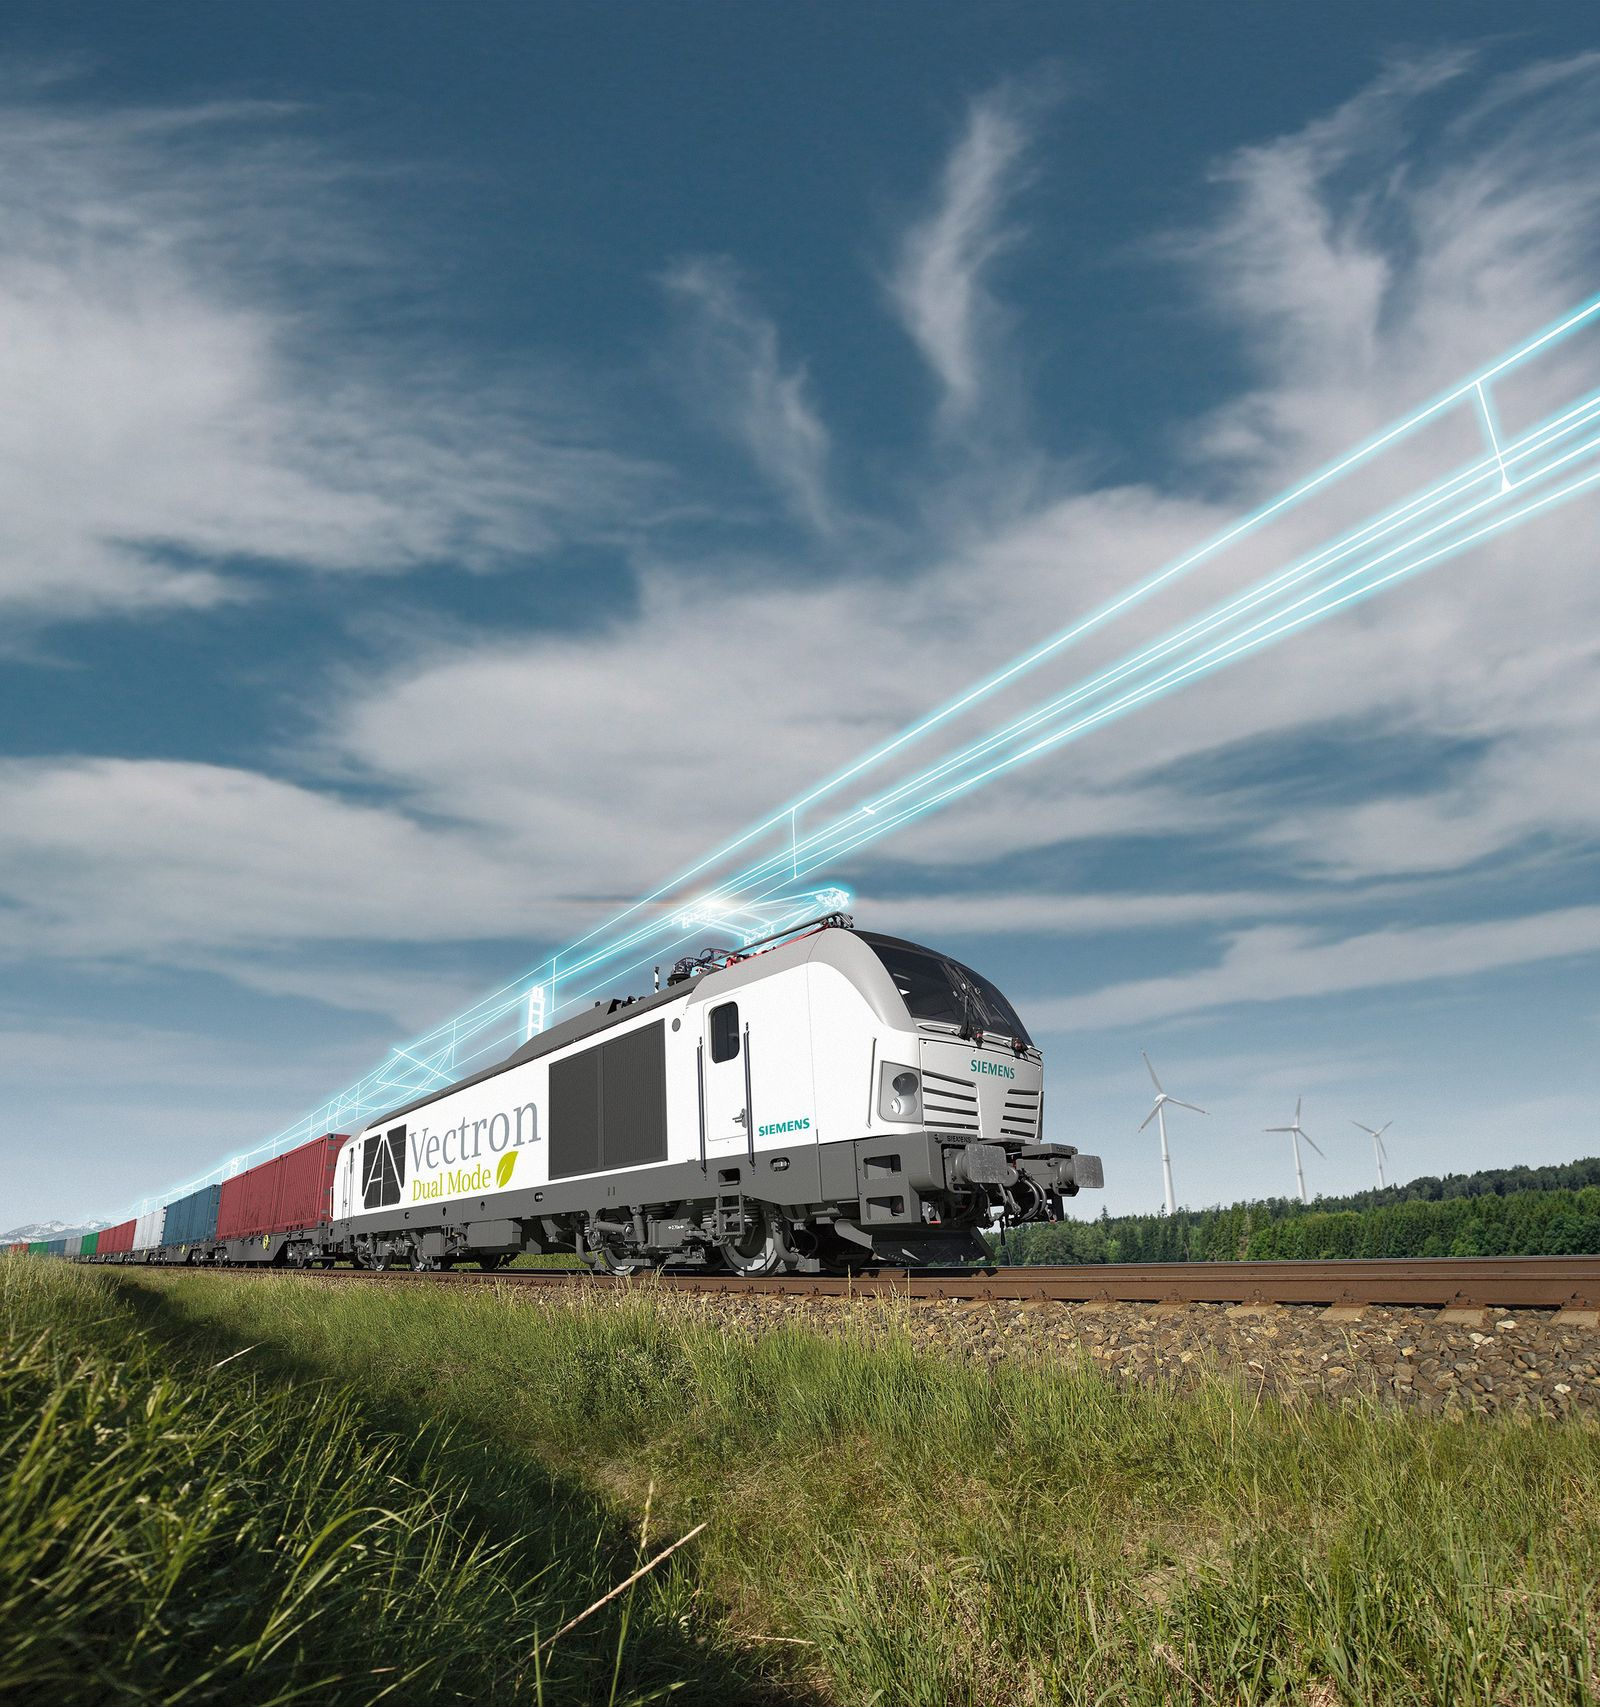 Siemens Mobility präsentiert neue Lokomotive Vectron Dual Mode / Siemens Mobility presents new Vectron Dual Mode locomotive